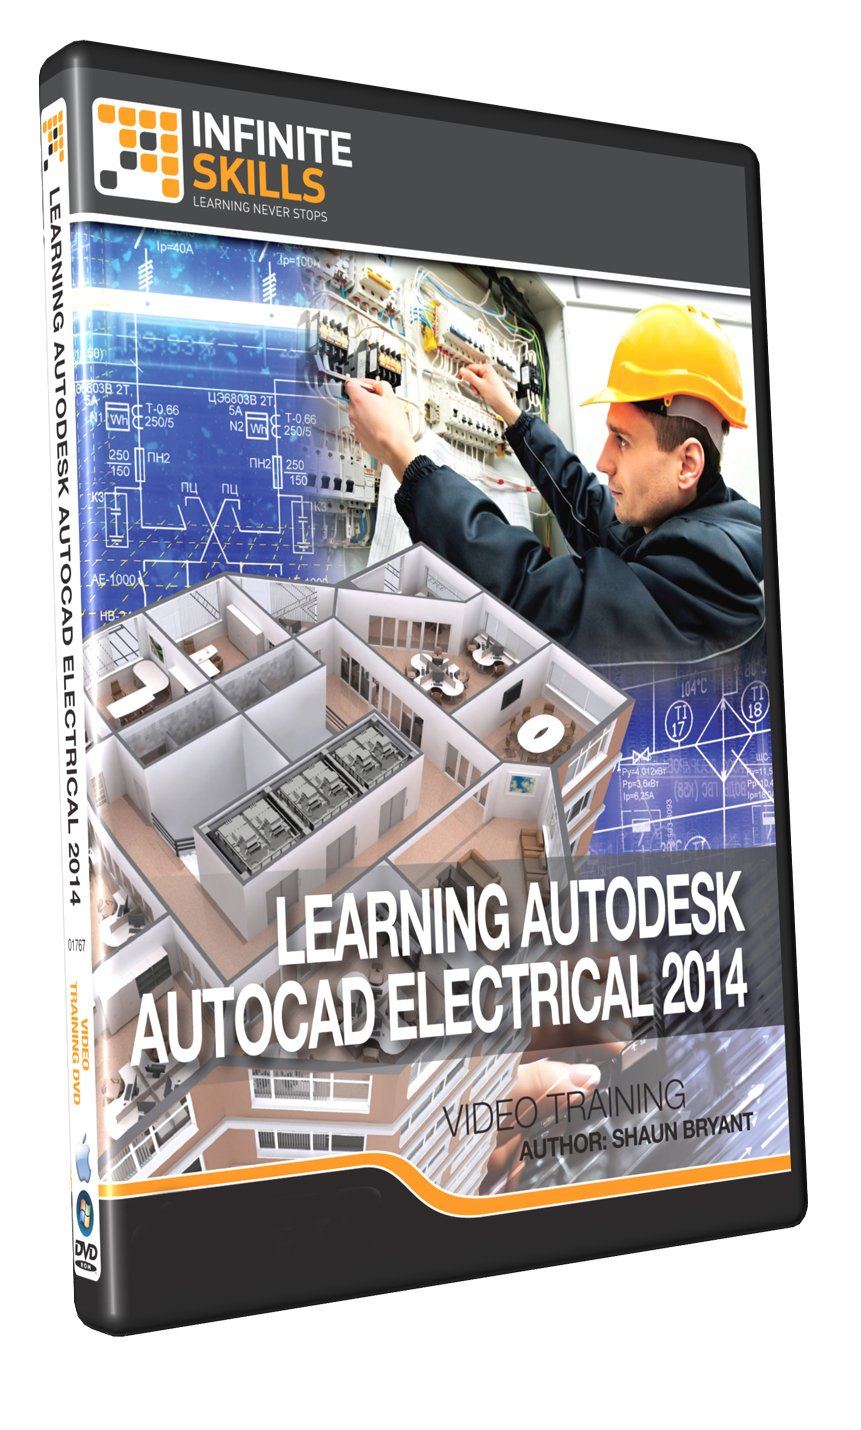 Amazon.com: Learning AutoCAD Electrical 2014 - Training DVD: Software